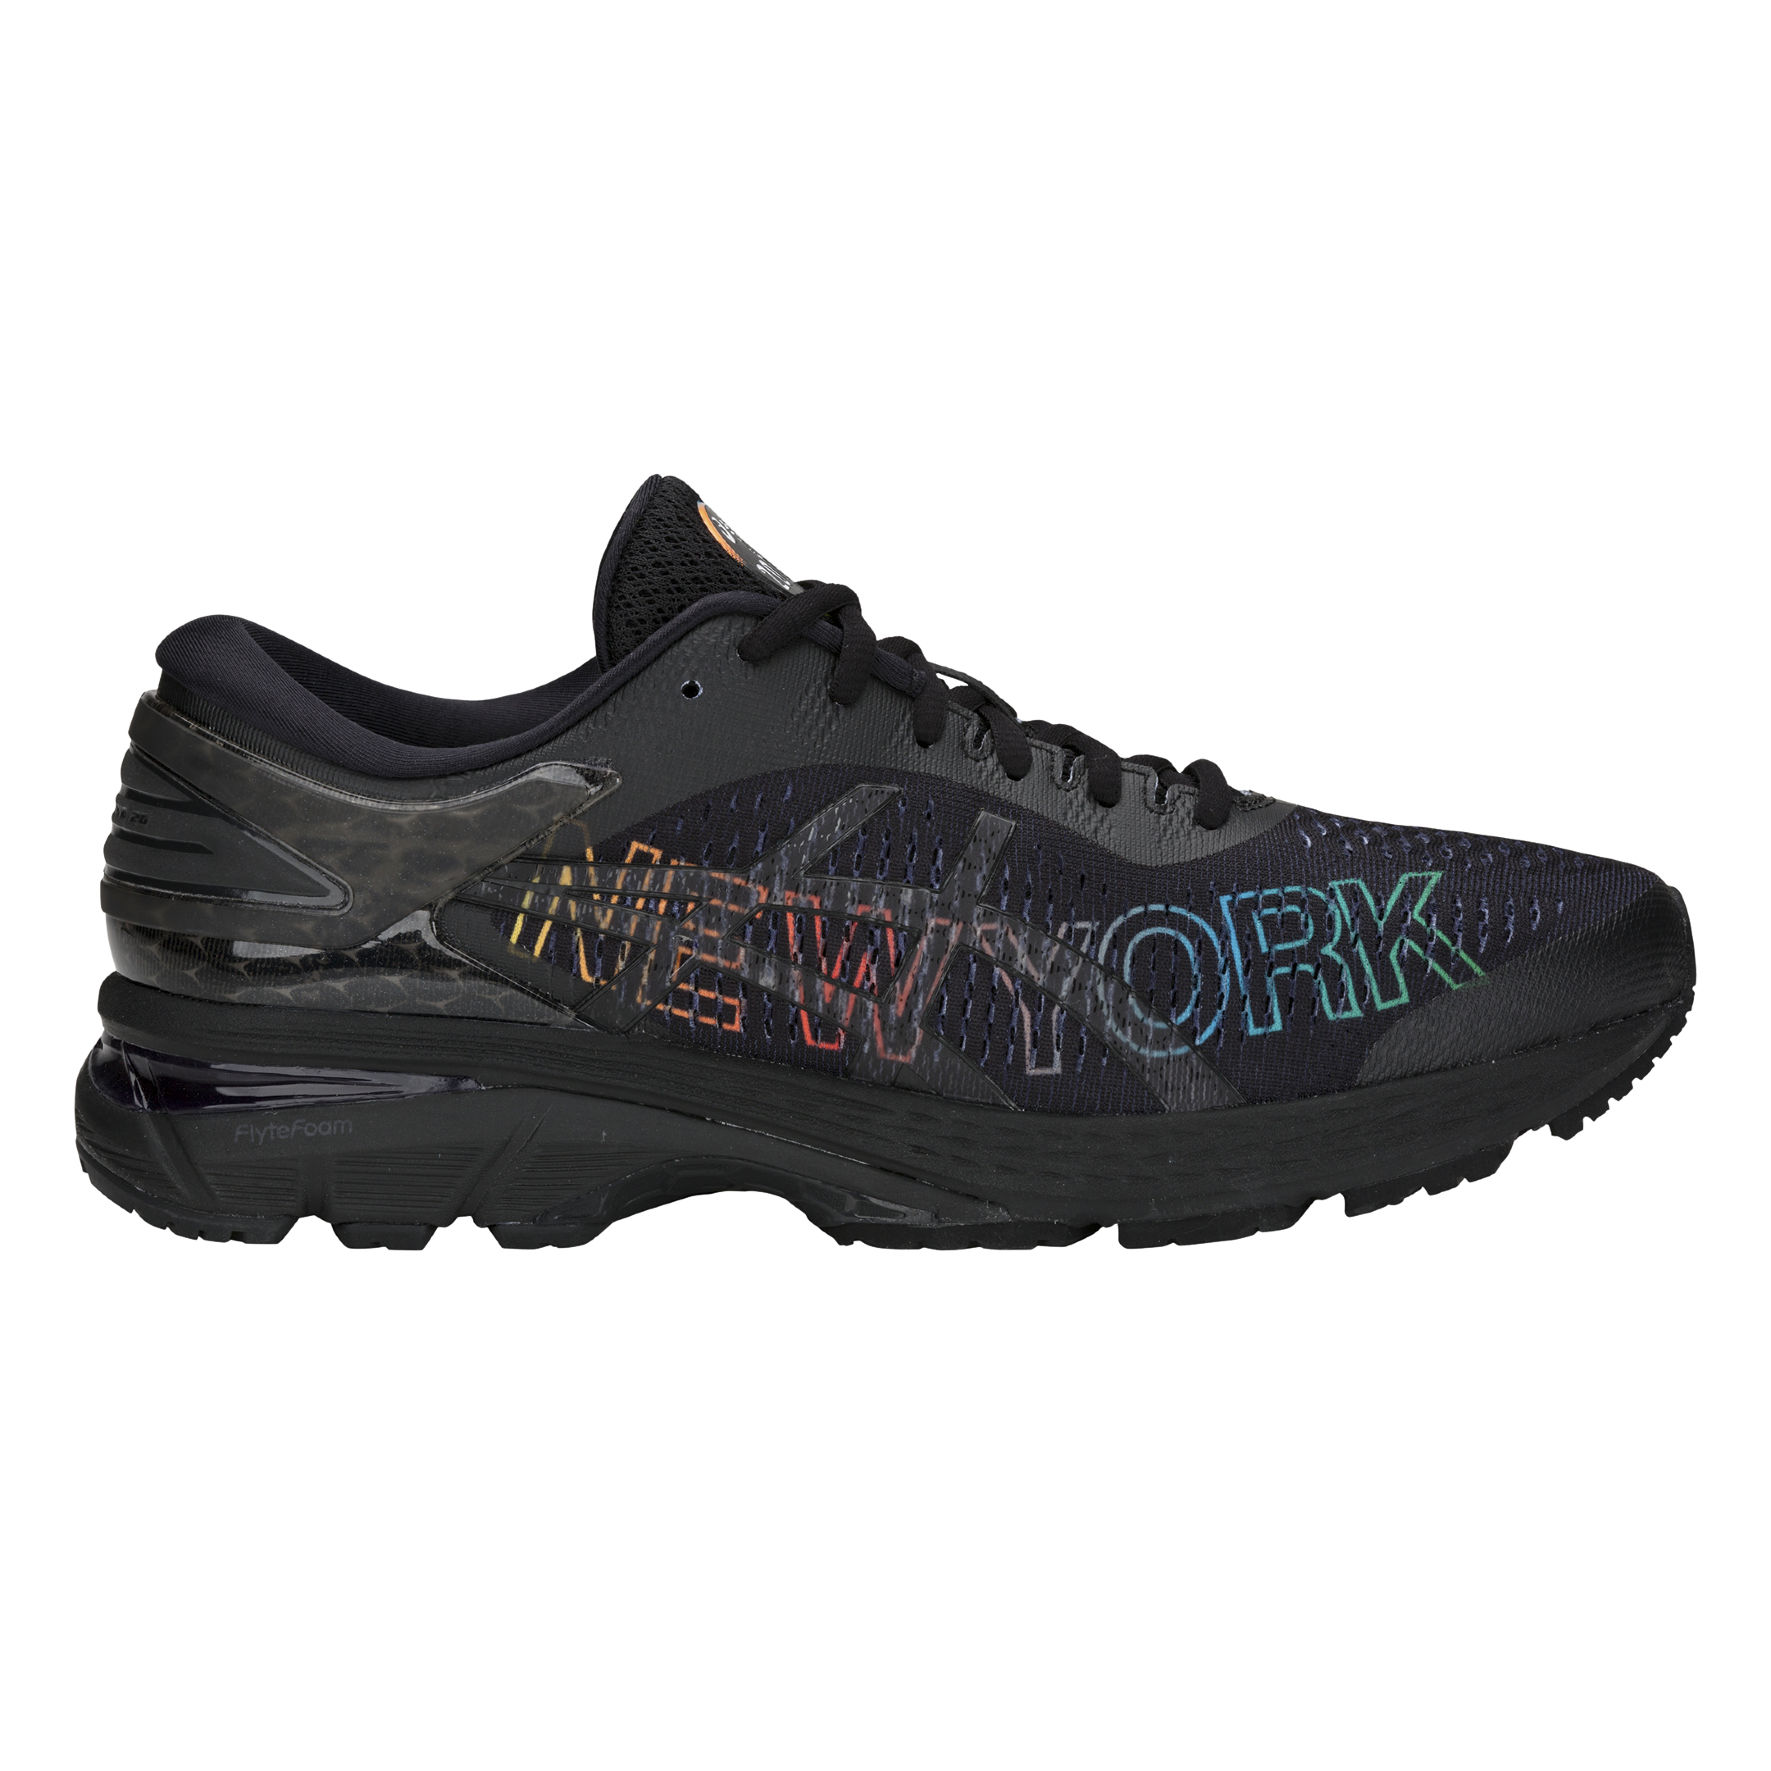 Asics Gel Kayano 25 NYC in Schwarz